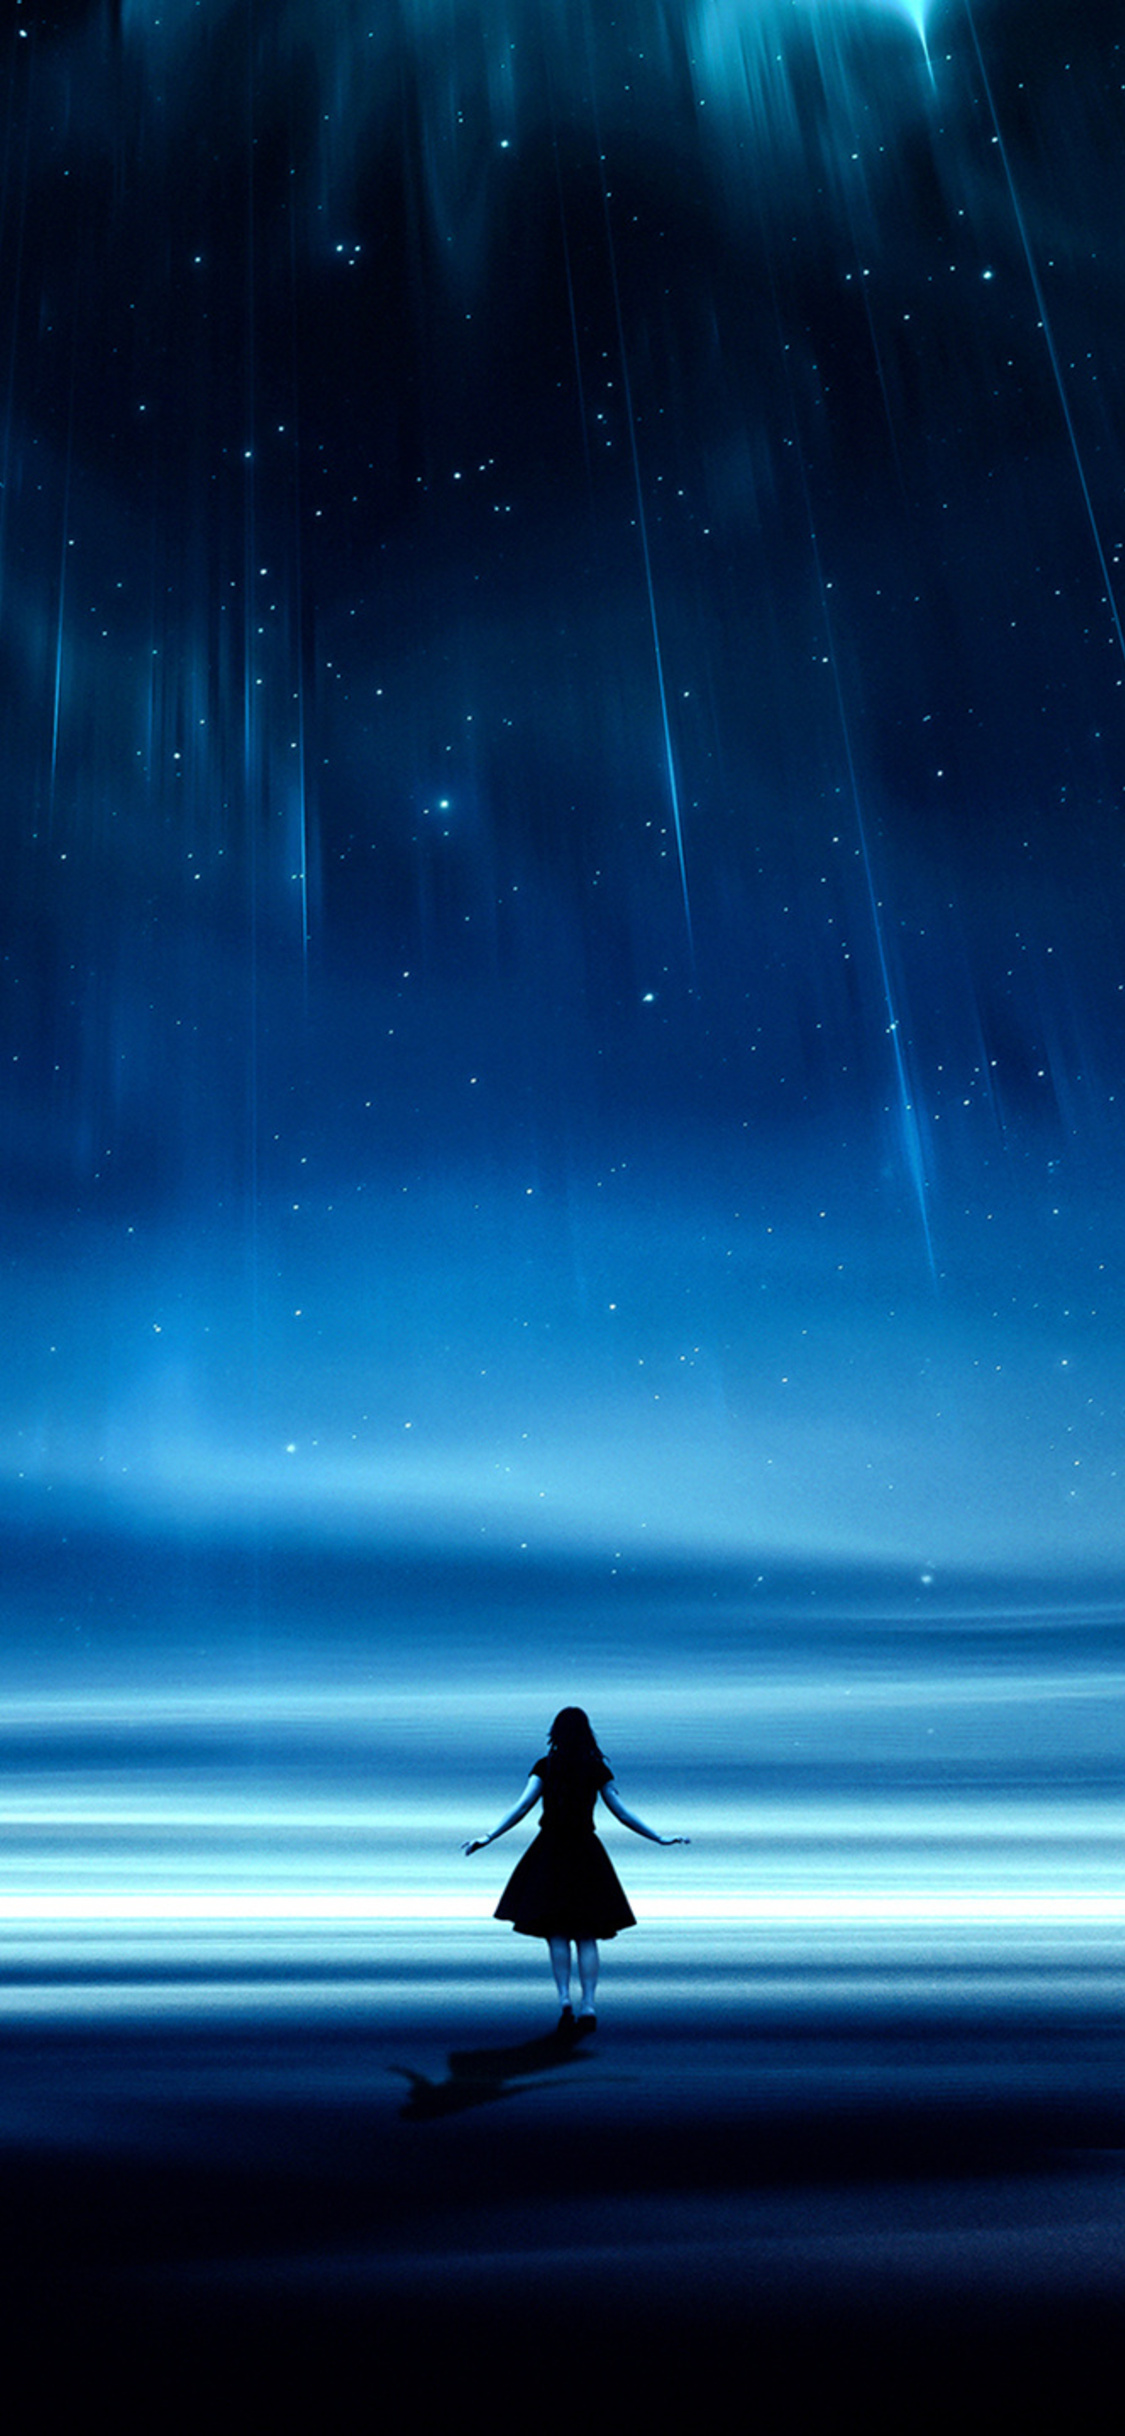 1125x2436 Girl Starry Night Dreamscape Iphone Xs Iphone 10